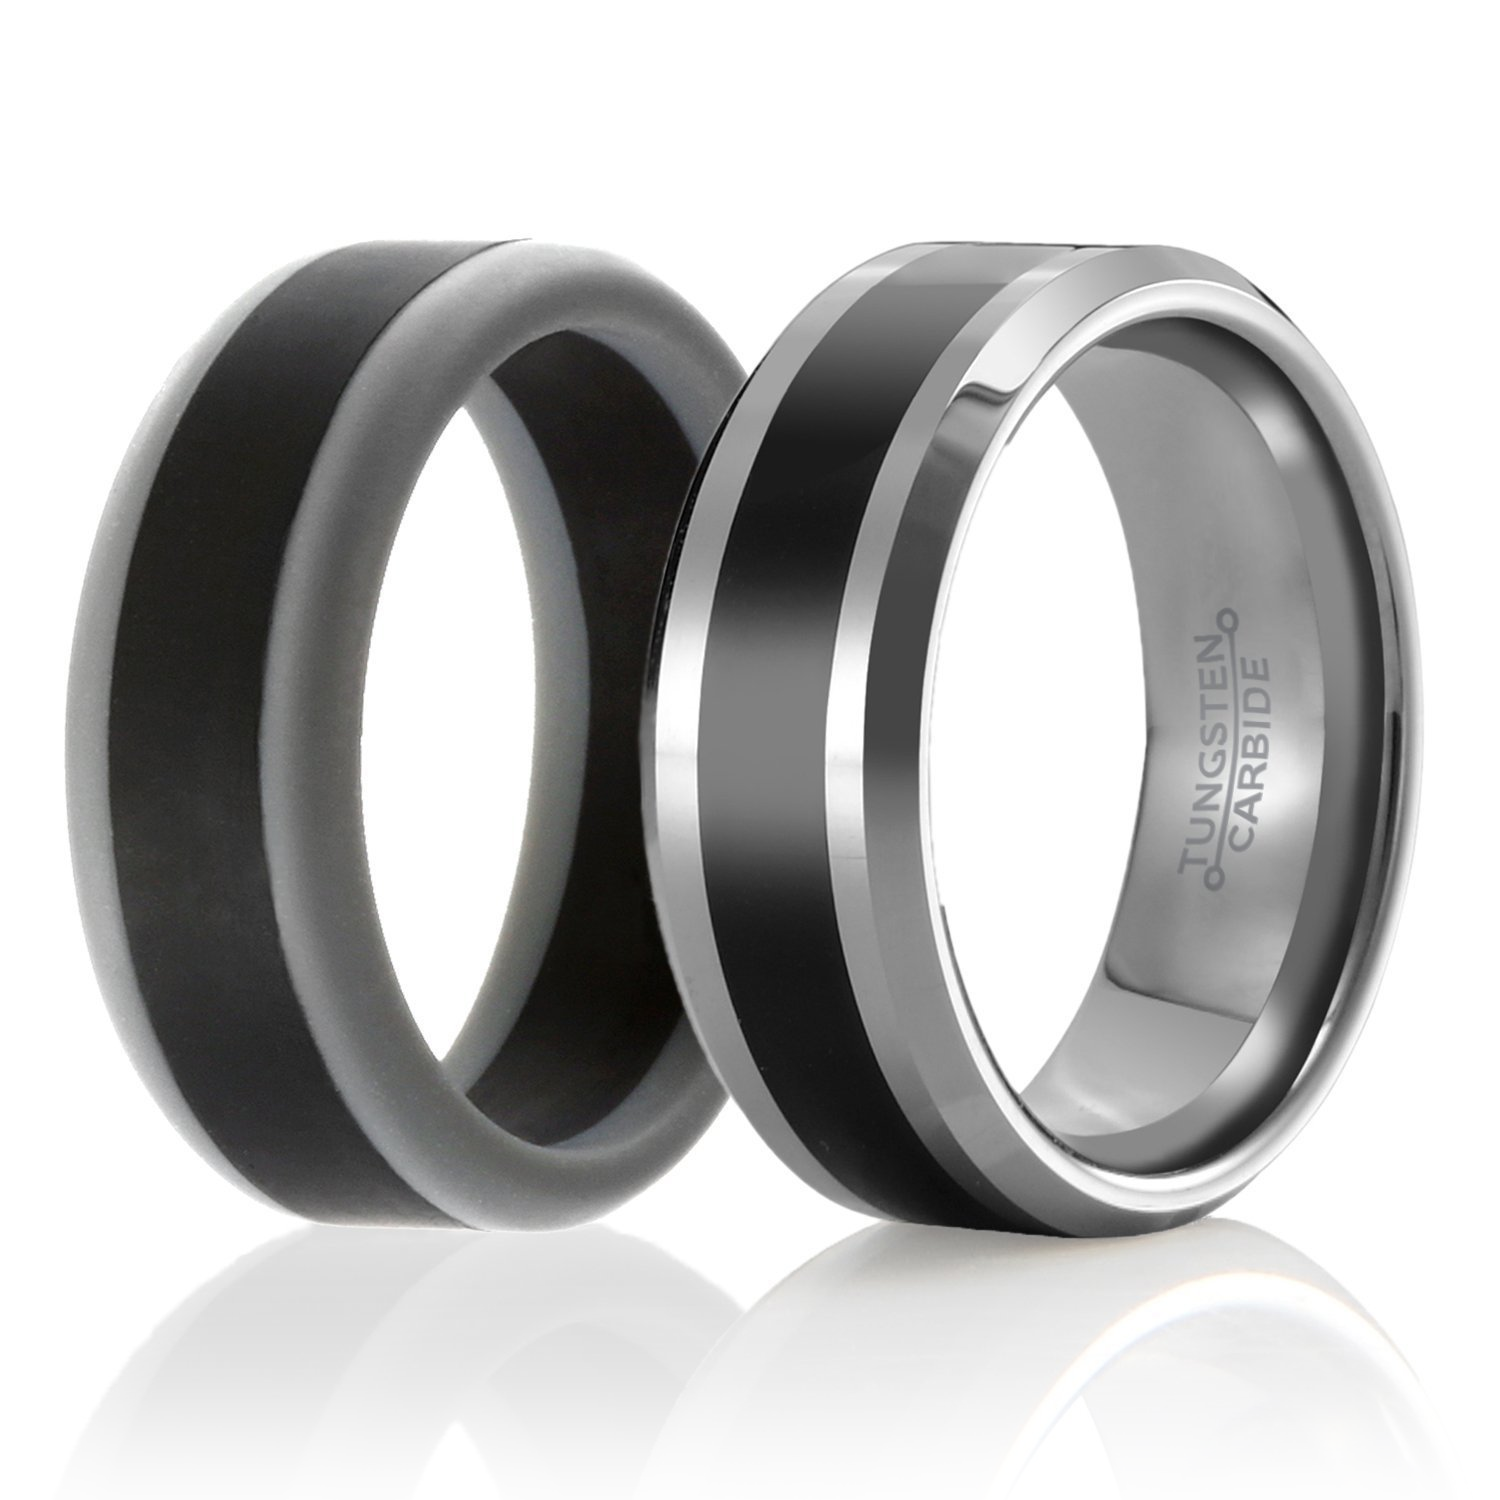 australia wedding s engagement lifestyle male you men wear mens style rings would a ring